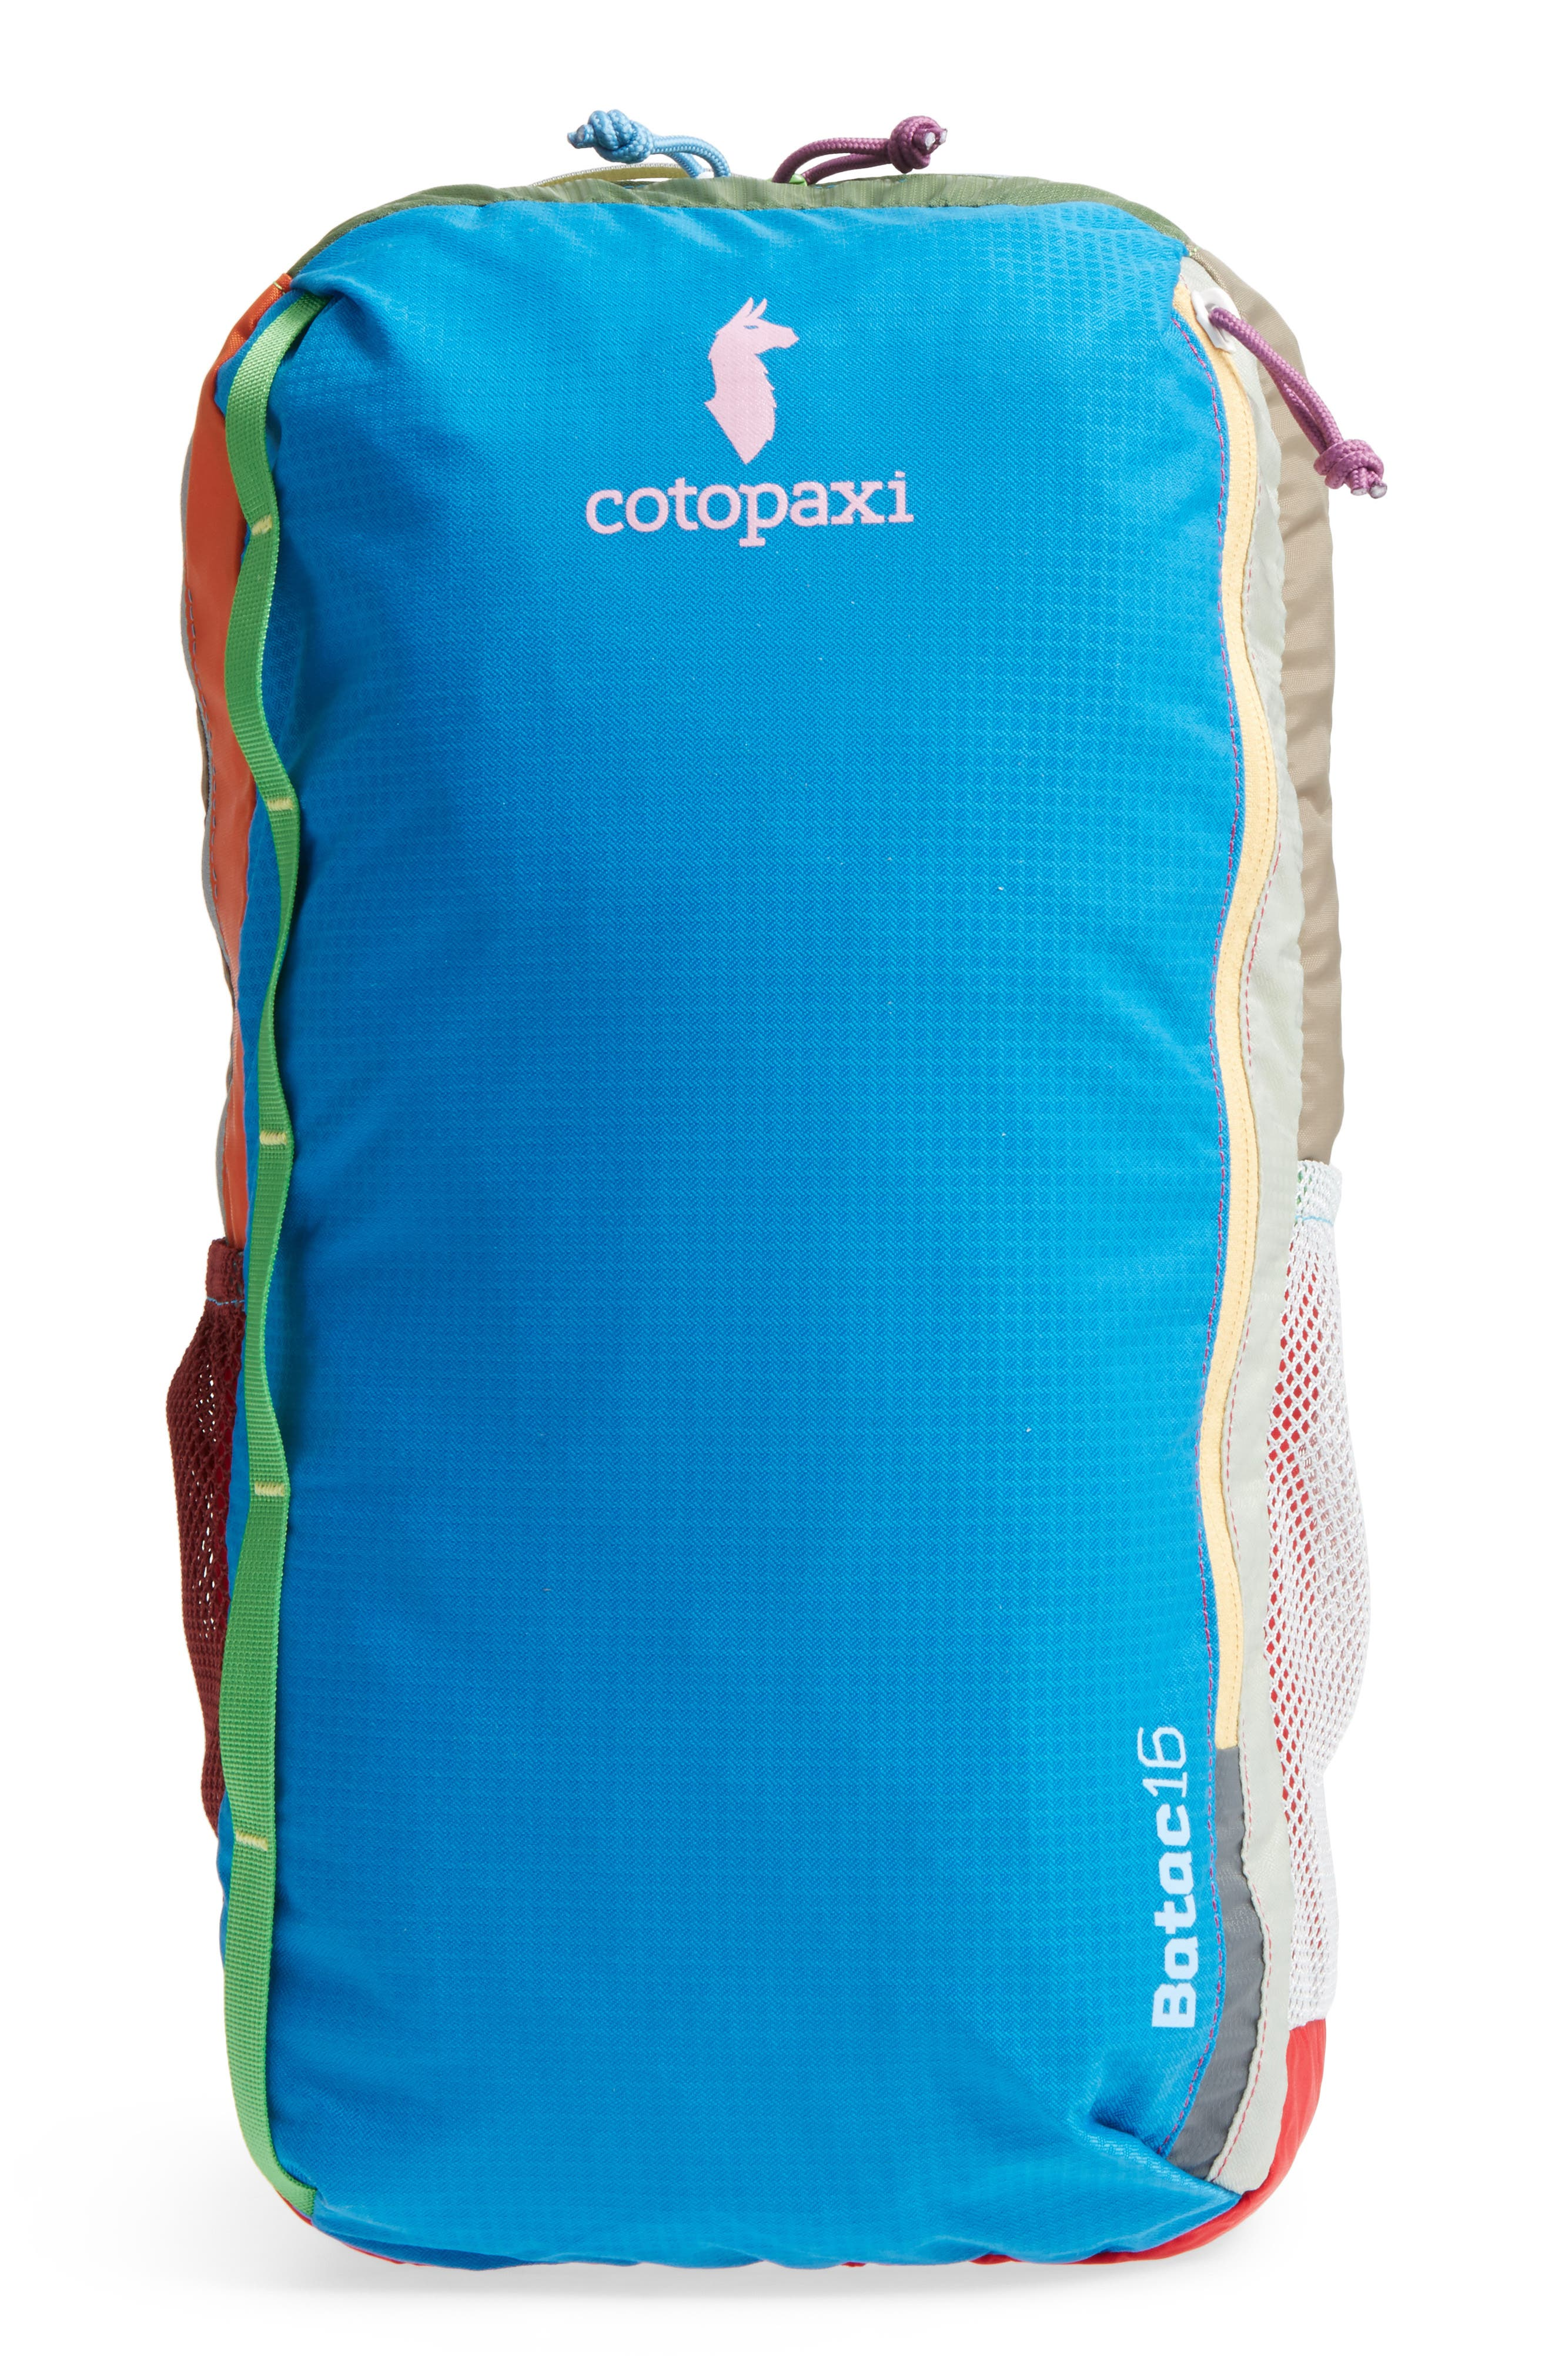 Batac Del Día One of a Kind Ripstop Nylon Daypack,                             Main thumbnail 1, color,                             960